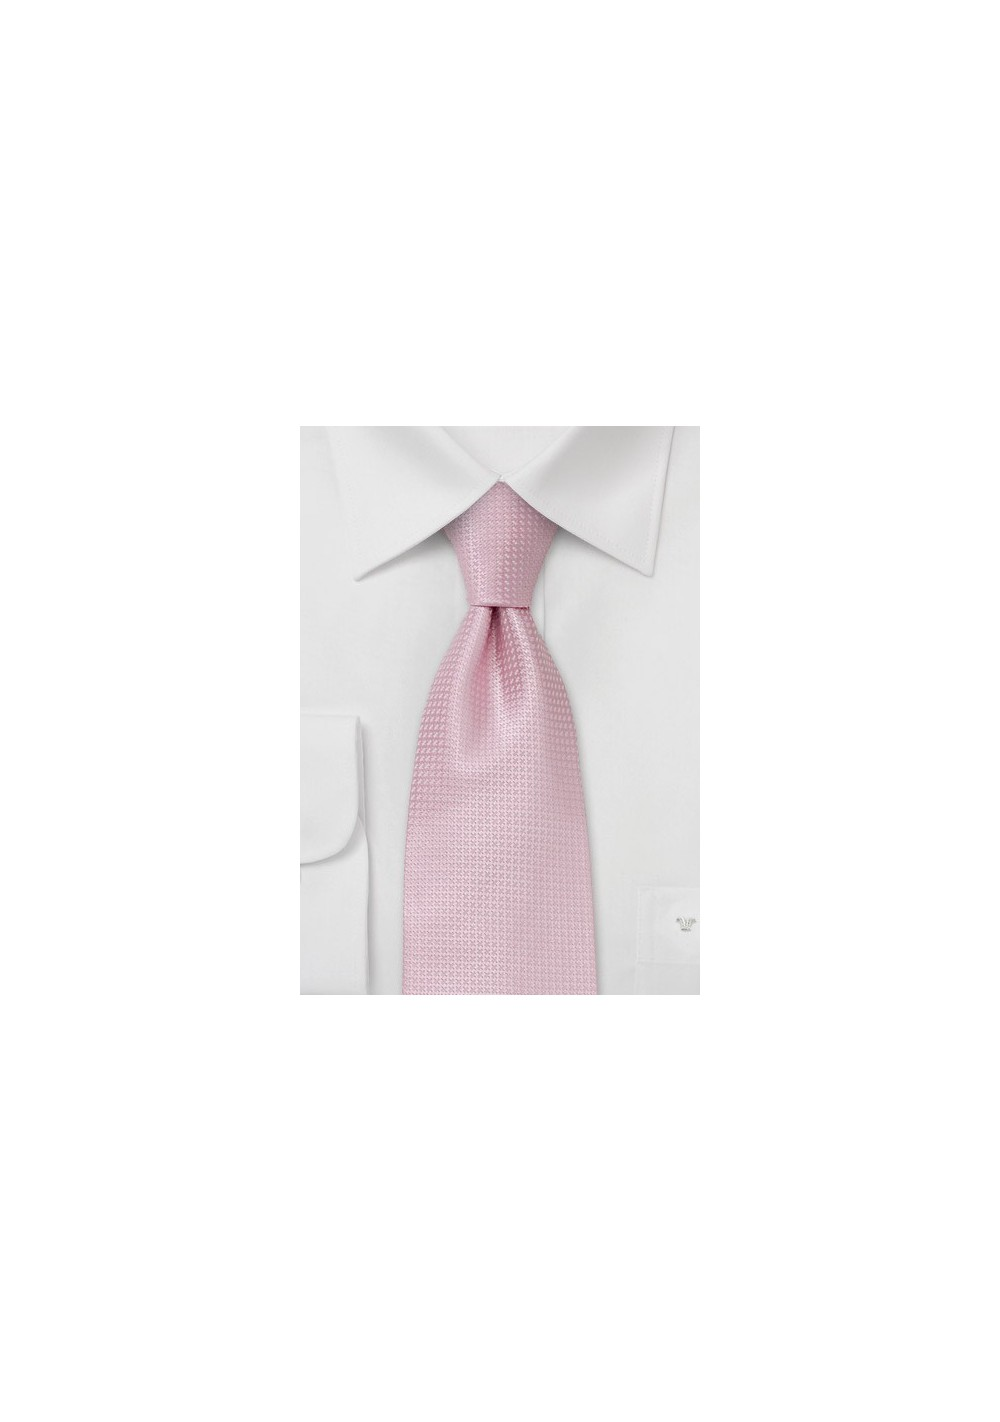 Spring and Summer tie  -  Solid colored pink tie with fine pattern